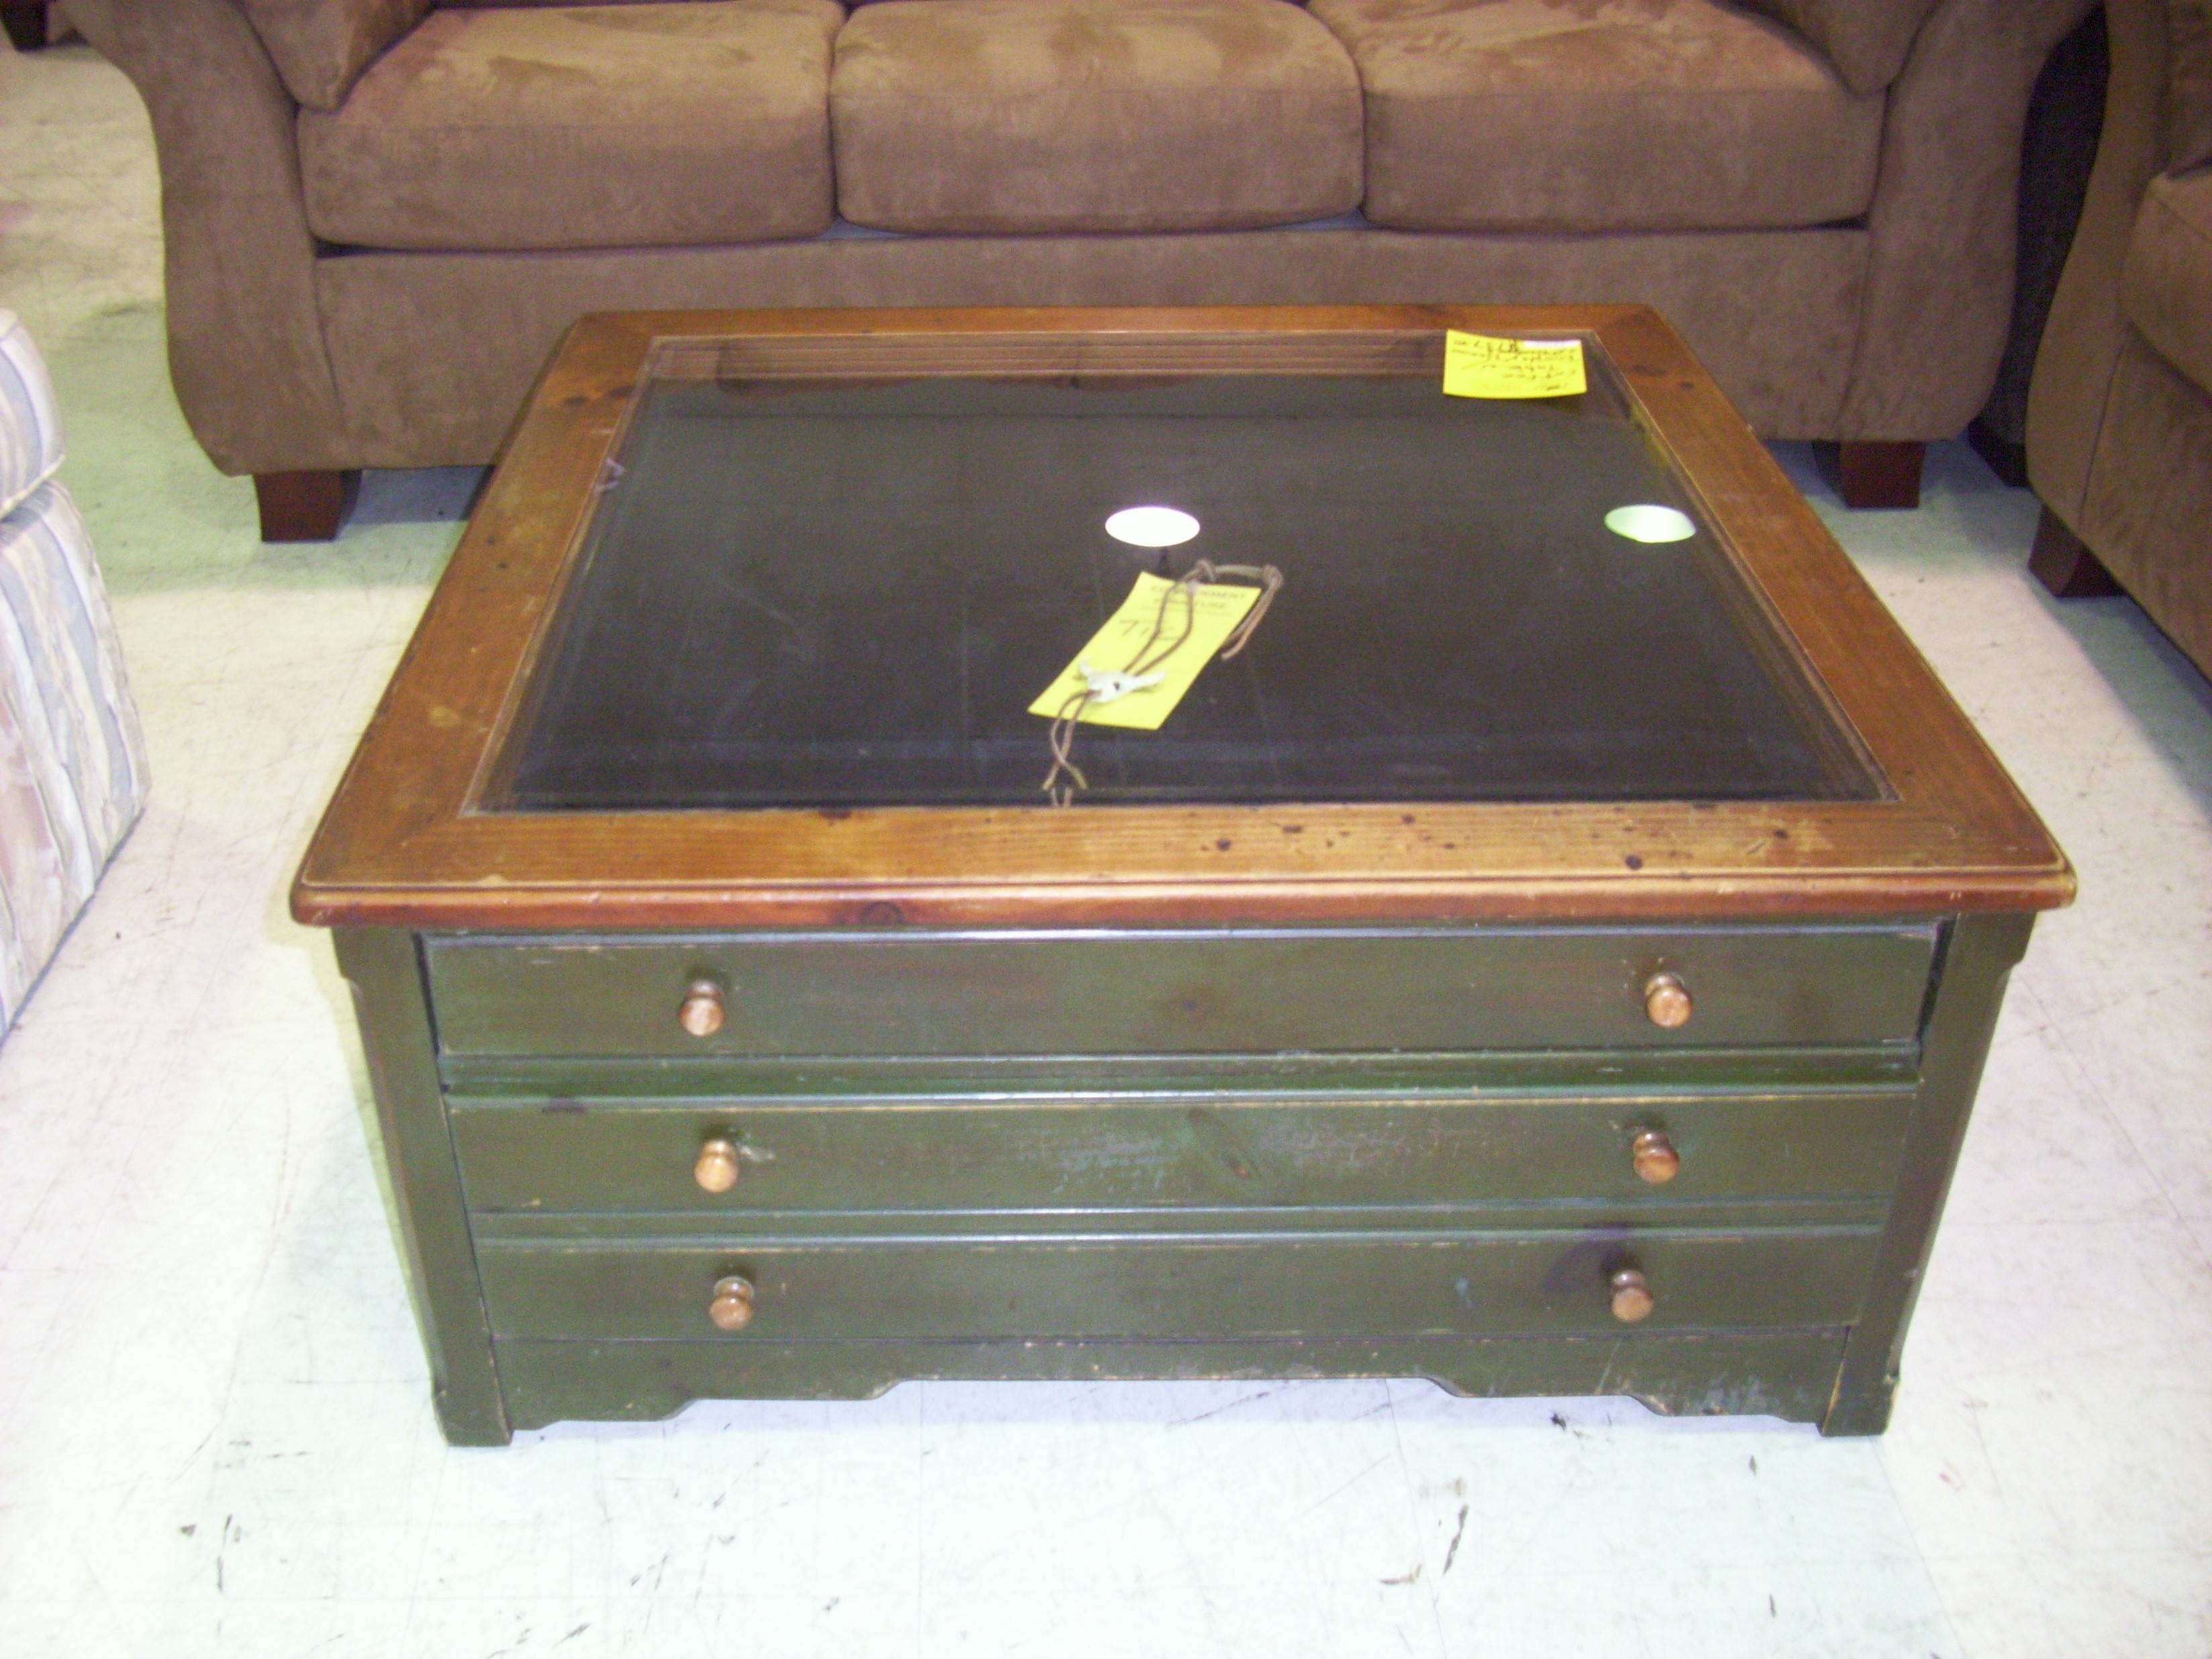 Dark Gray Wooden Table With Three Drawers Plus Square Glass pertaining to Coffee Tables With Glass Top Display Drawer (Image 19 of 30)